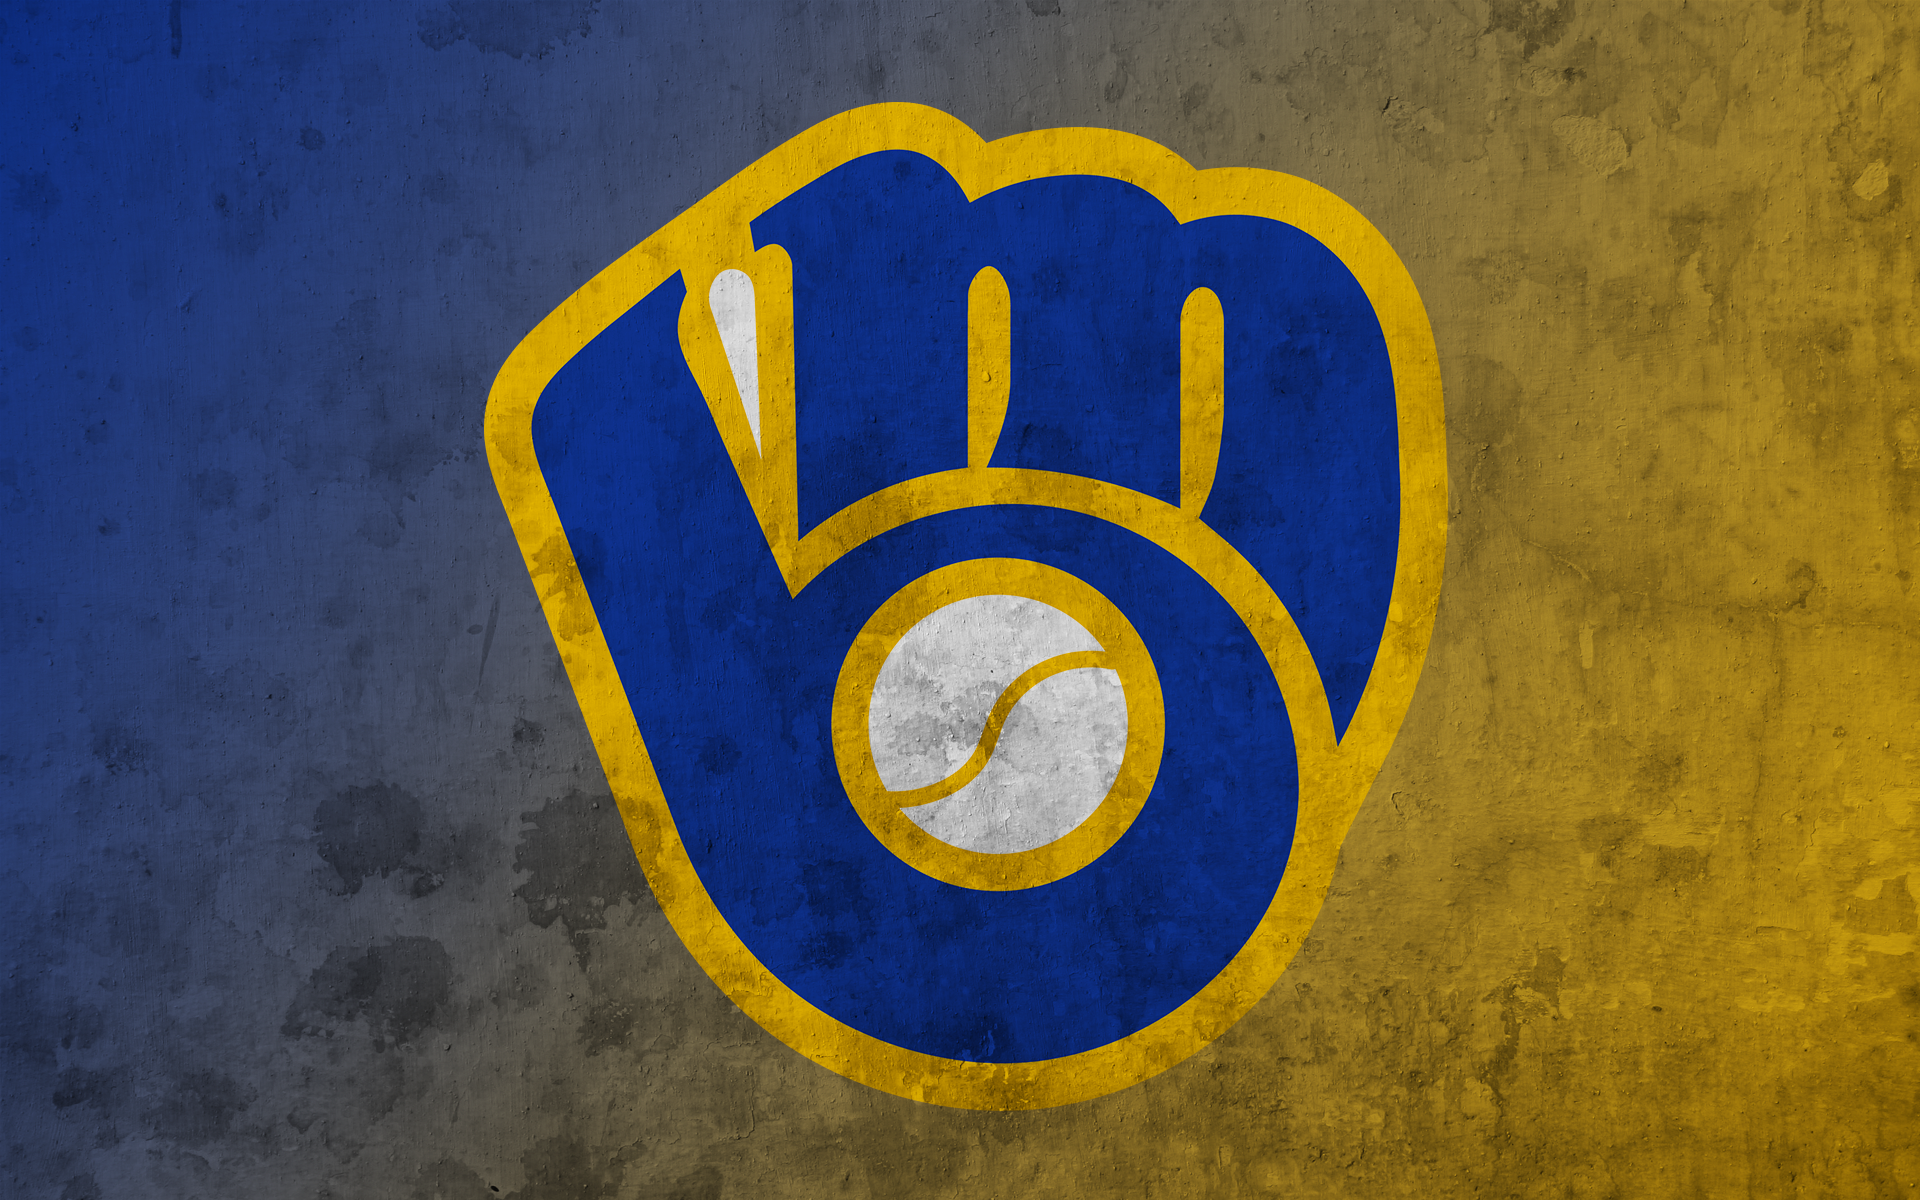 Brewers Win; Remain In Thick Of Division, Wild Card Races